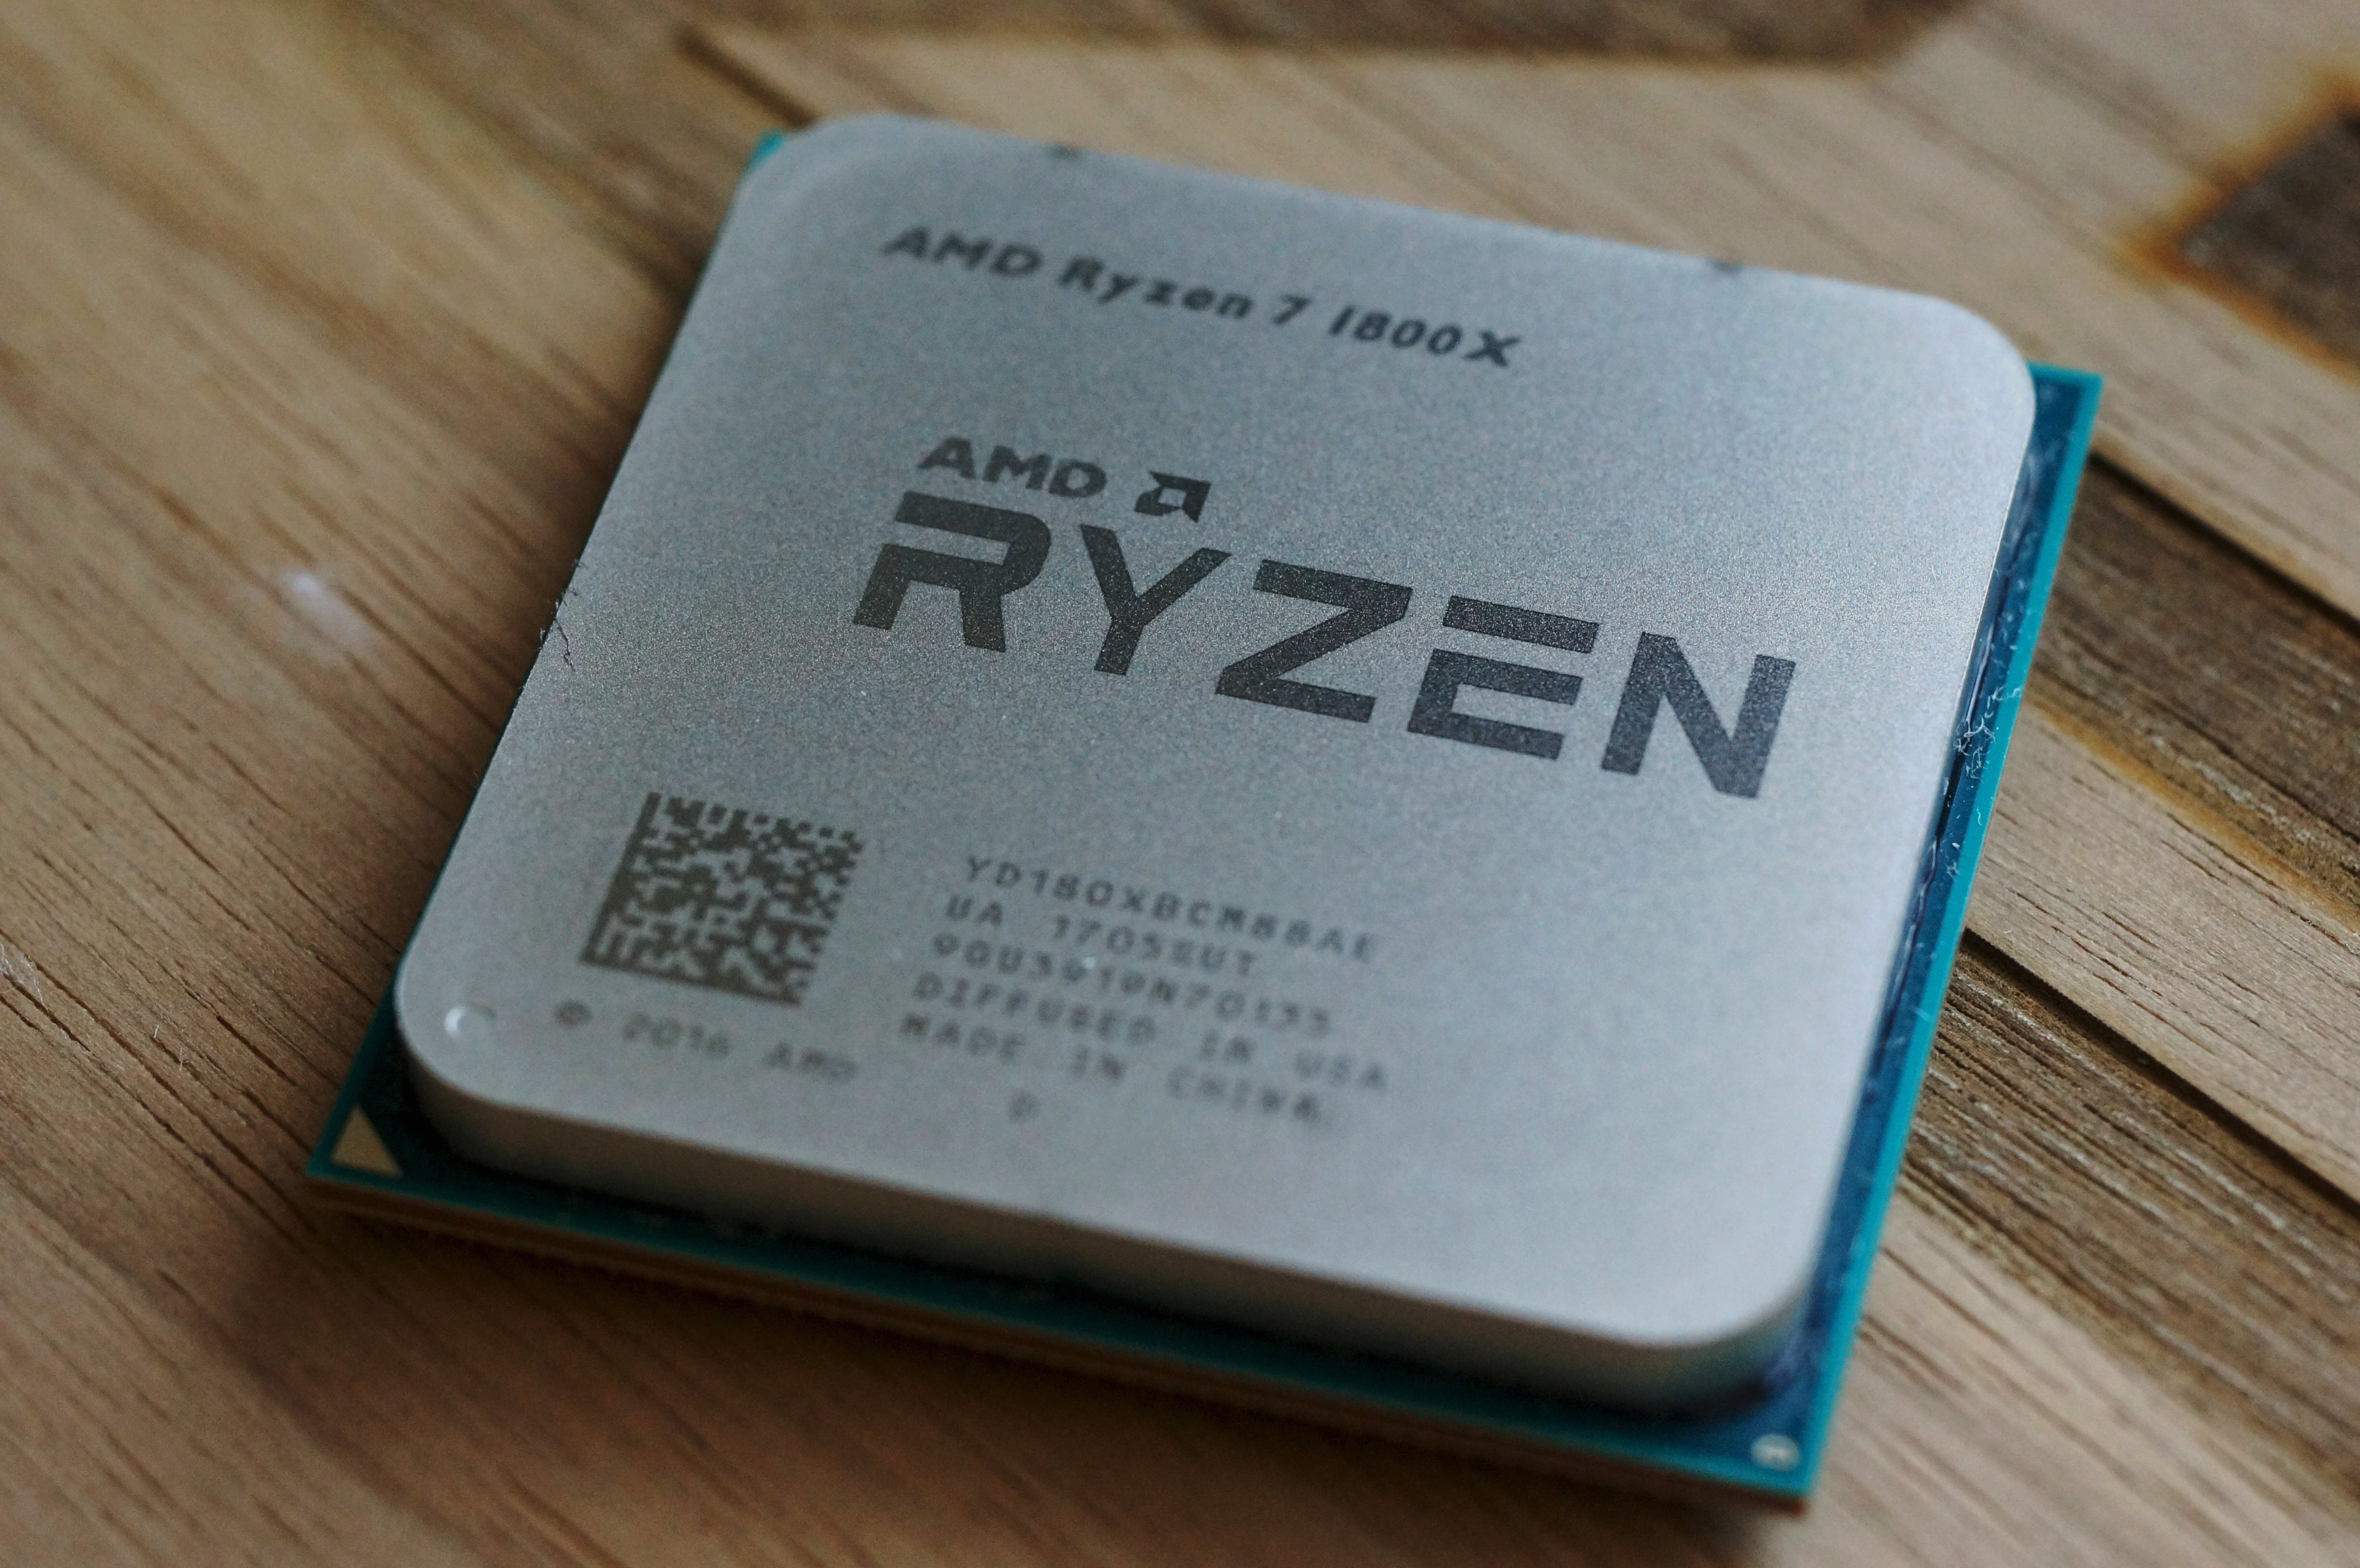 AMD's CEO says patches will boost Ryzen gaming performance